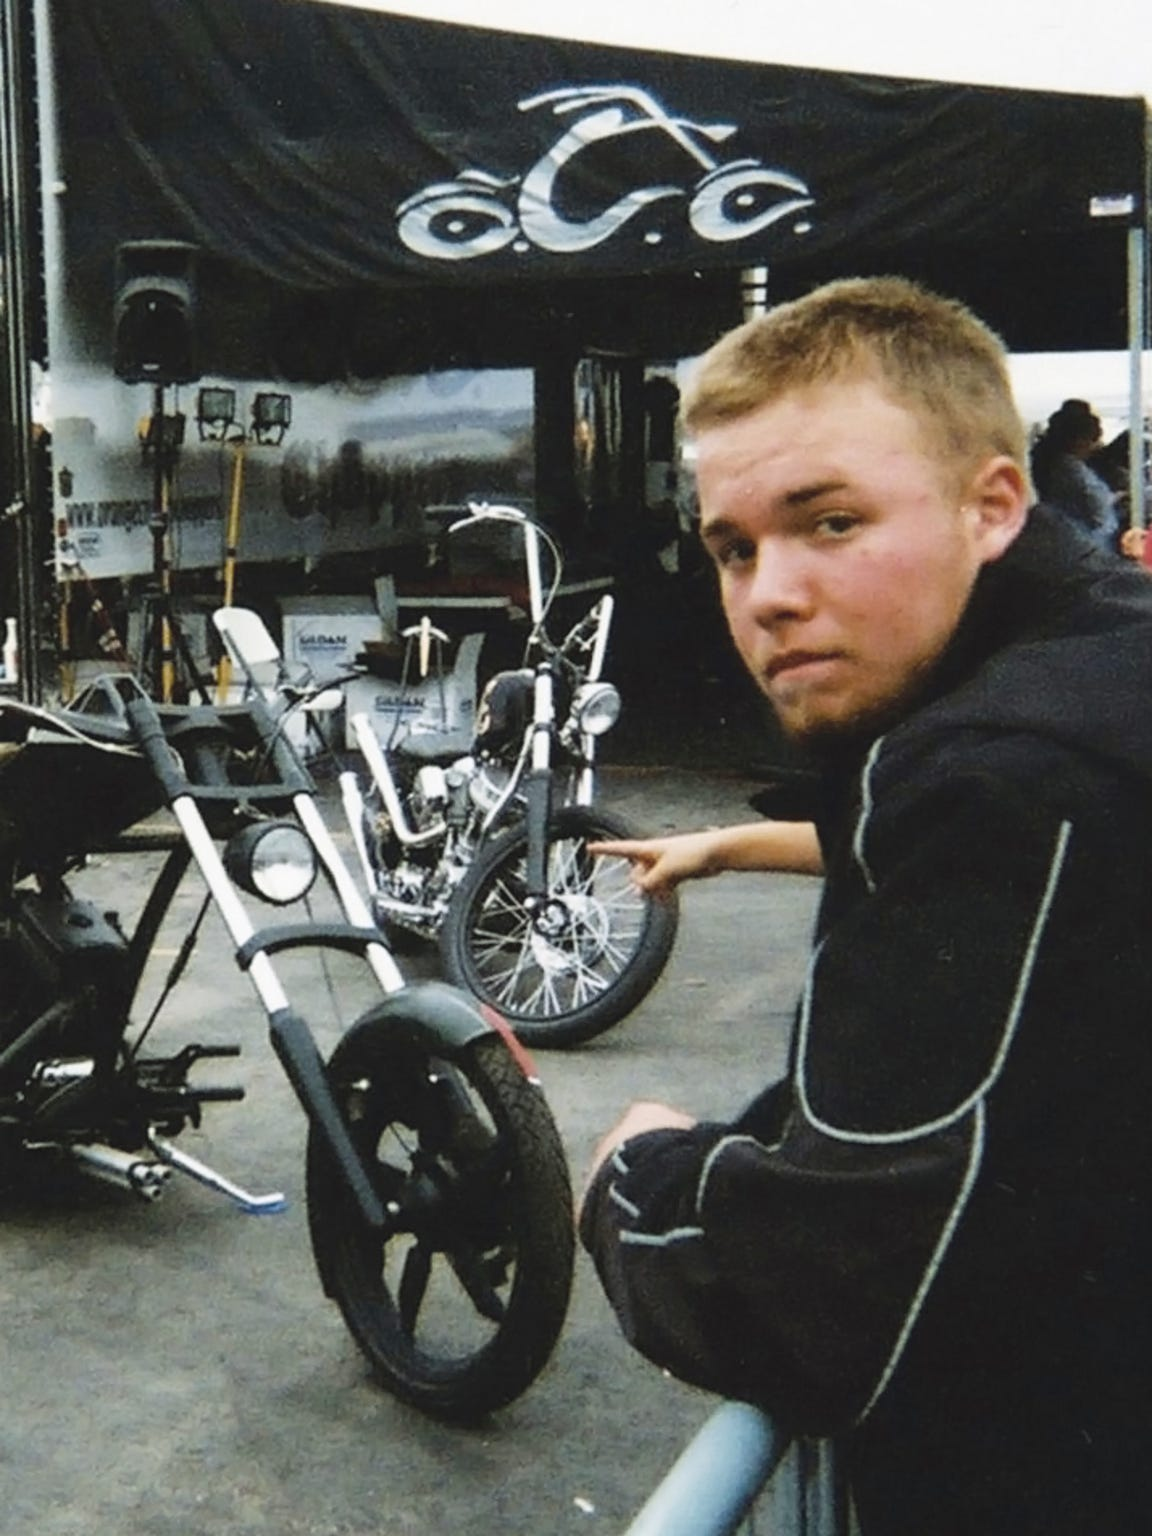 Dustin Zuelsdorf was passionate about motorcycles the way he was about football.